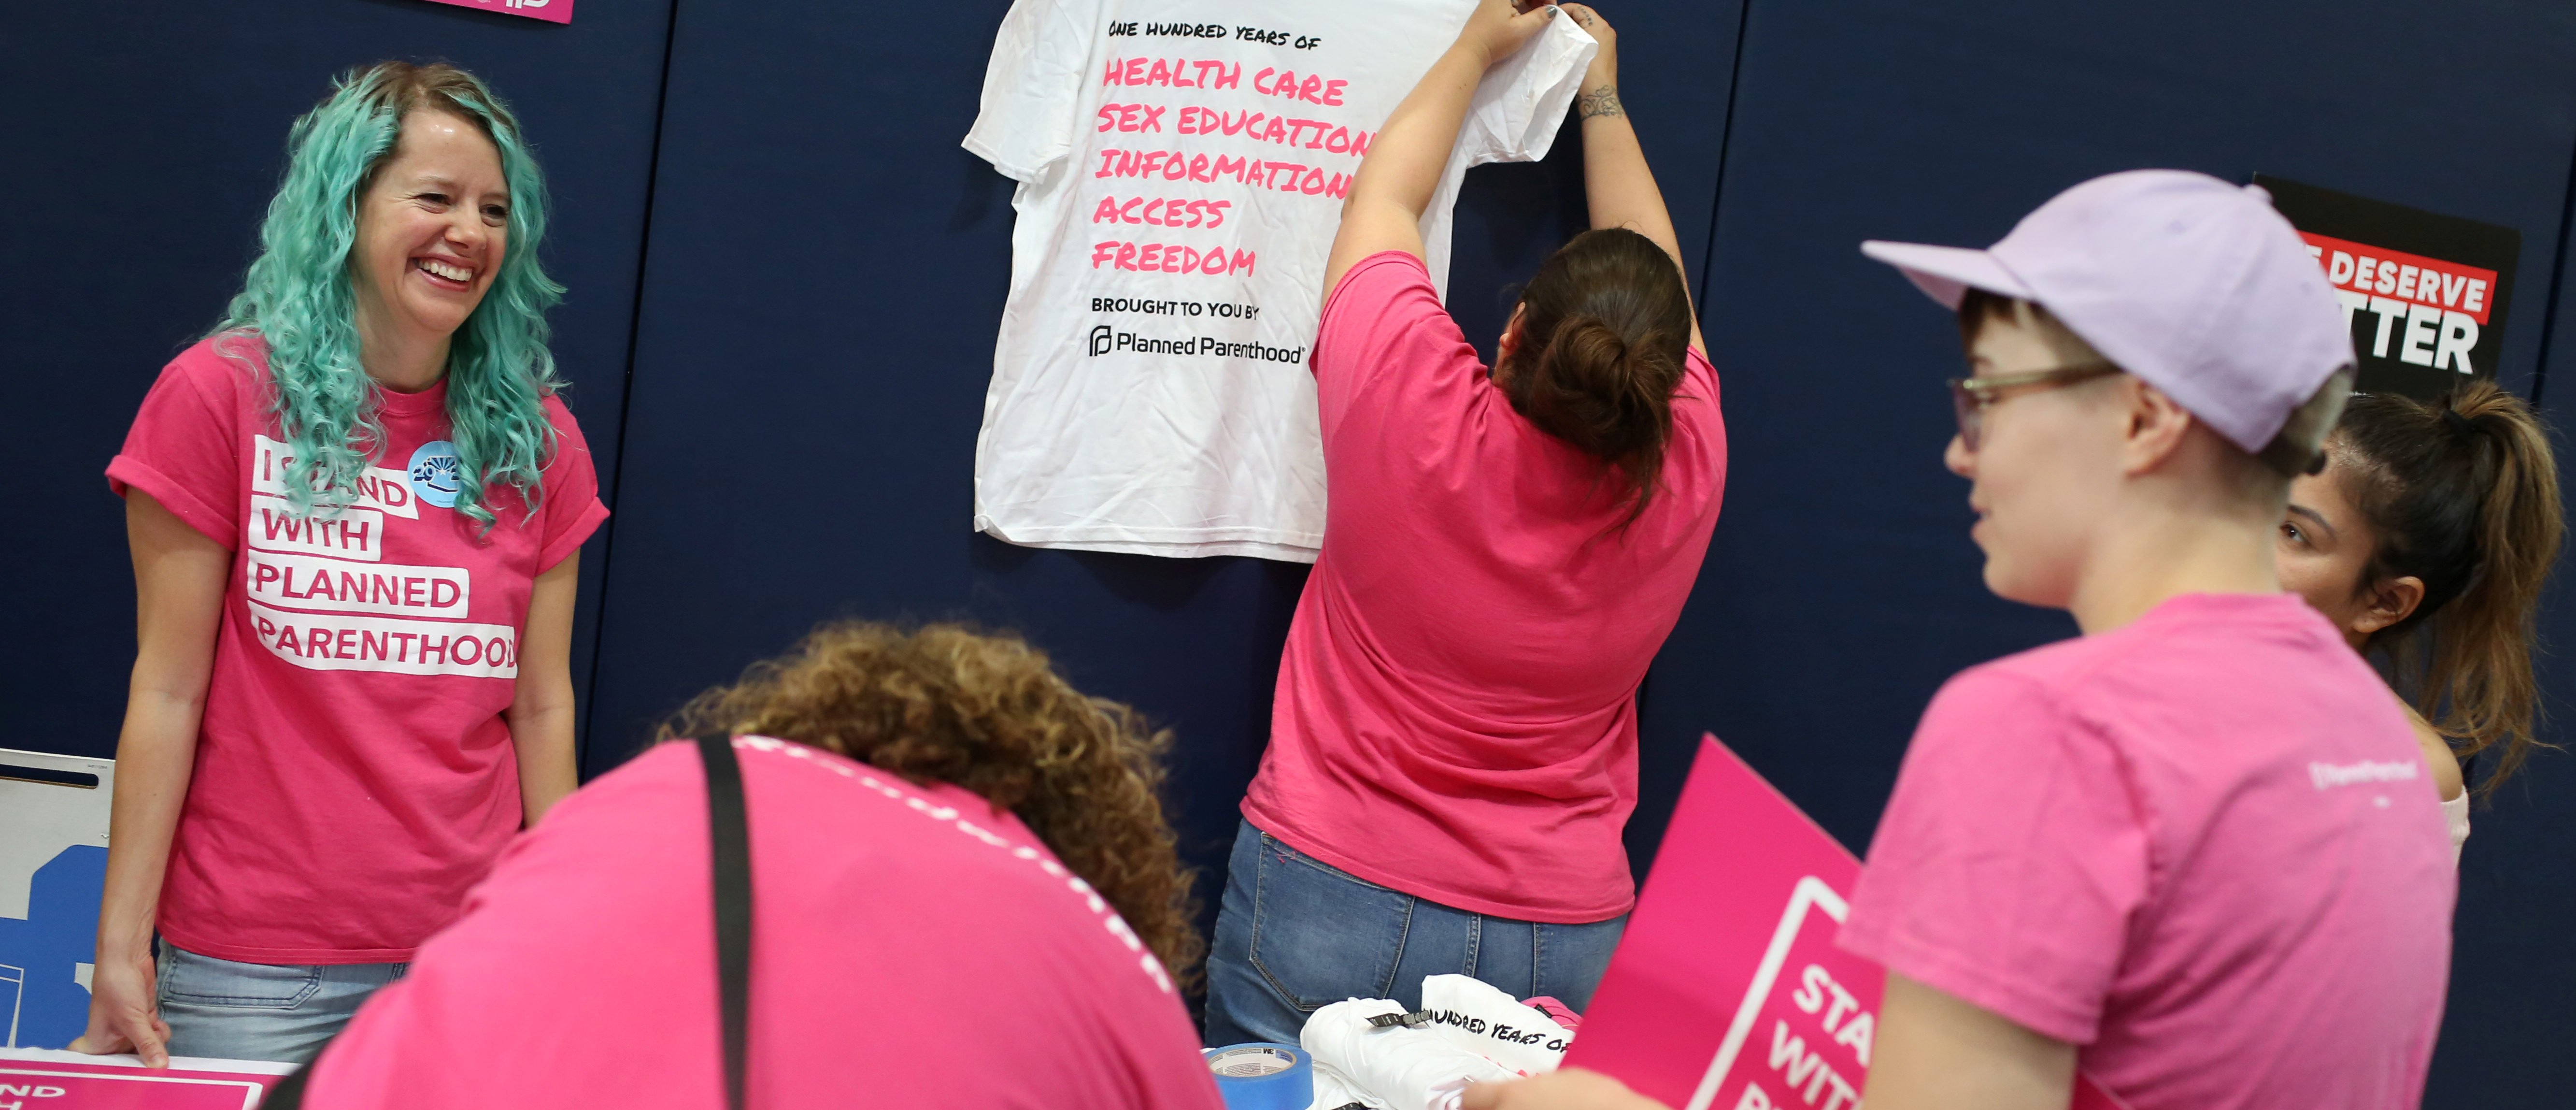 Volunteers with Planned Parenthood of Arizona set up at a bilingual healthcare town hall sponsored by local organizations that work in Latino voter outreach, disability advocacy and community health at the Ability360 Center in Phoenix, Arizona, U.S. July 5, 2017. Senators John McCain and Jeff Flake (R-AZ) were invited but declined to attend. Picture taken July 5, 2017. REUTERS/Caitlin O'Hara